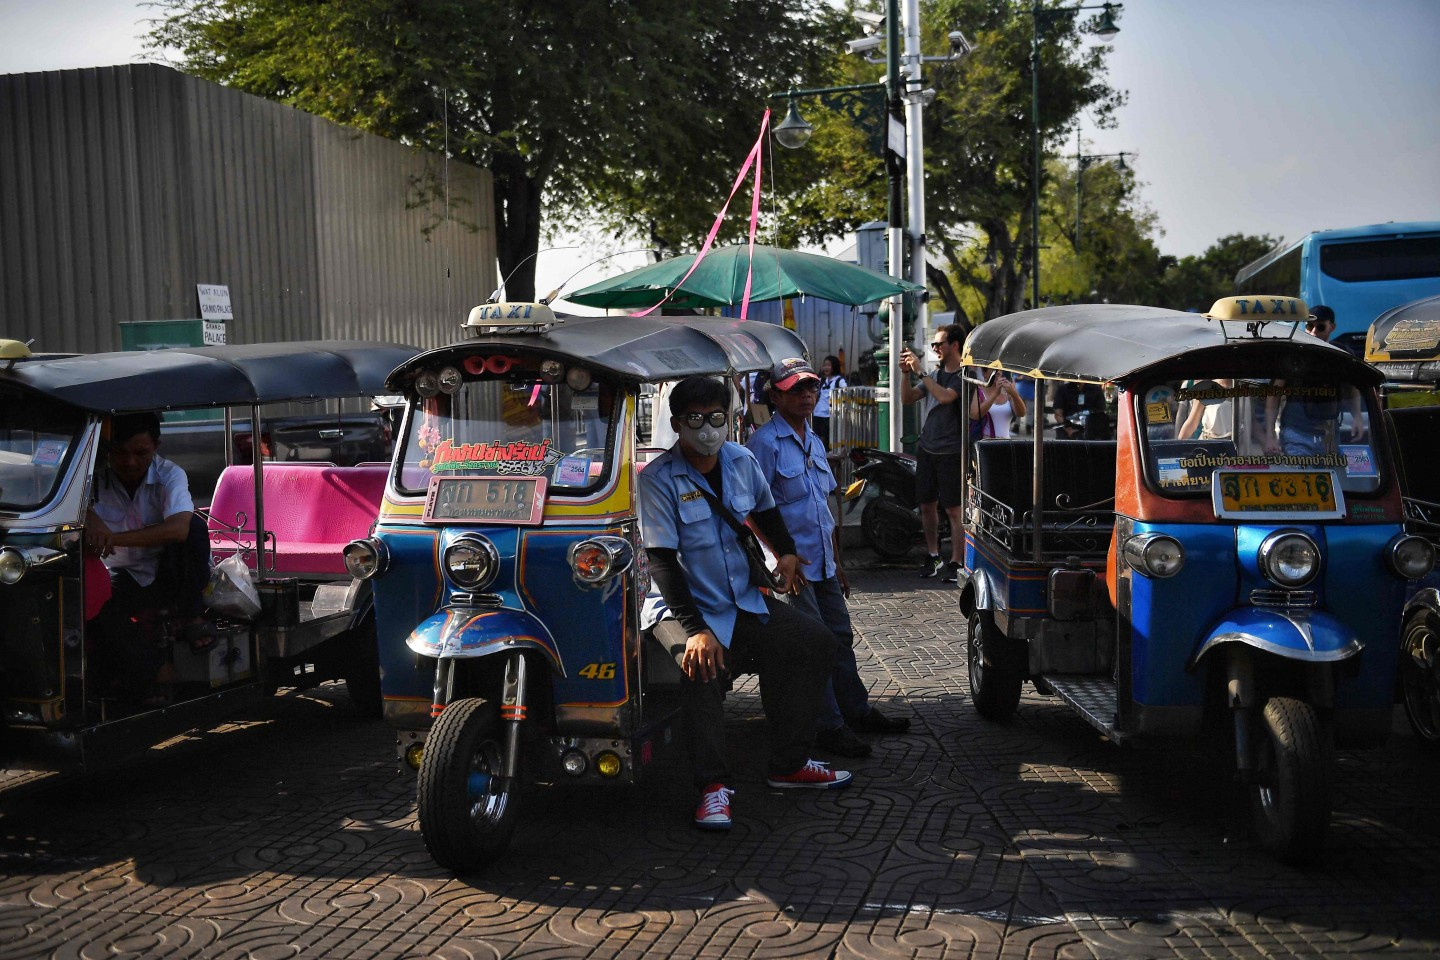 A tuk tuk driver in a protective facemask, amid fears over the spread of the COVID-19 coronavirus, waits for customers near the Grand Palace in Bangkok on 17 February 2020. (Lillian Suwanrumpha/AFP)